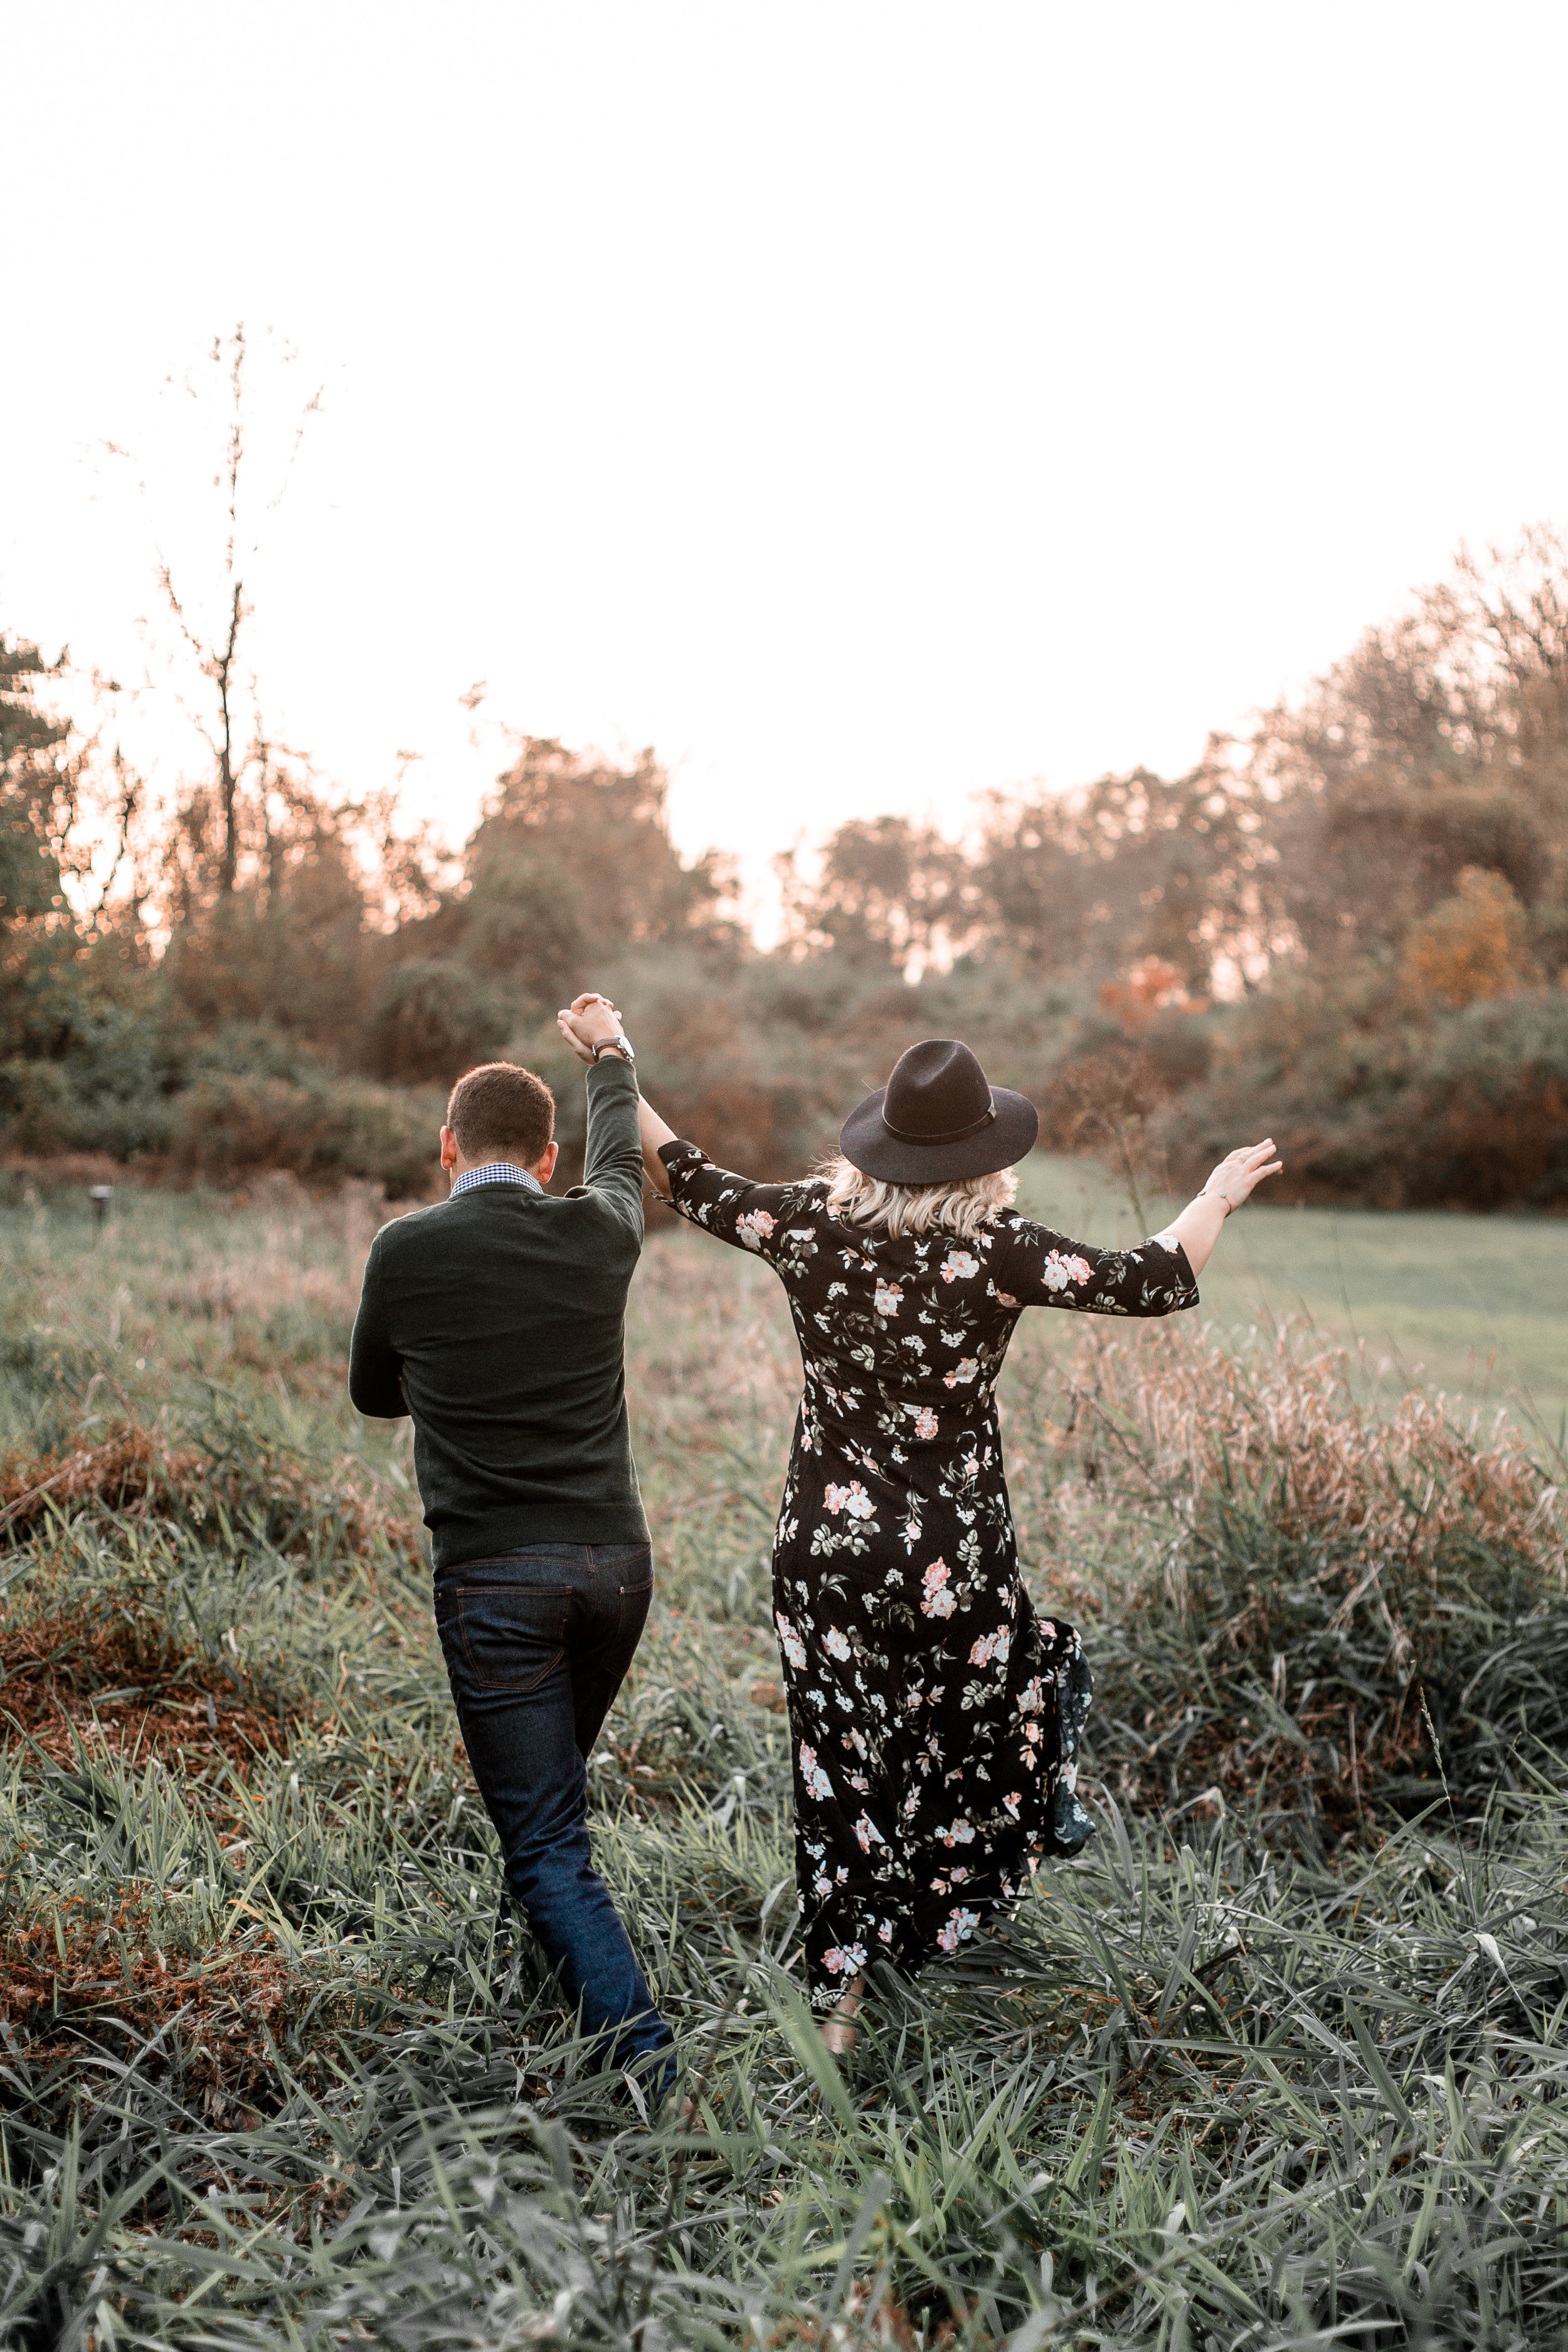 nicole-daacke-photography-carefree-bohemian-lancaster-pa-pennsylvania-engagement-photos-engagement-session-golden-sunset-adventure-session-in-lancaster-pa-lancaster-pa-outdoor-wedding-photographer-33.jpg